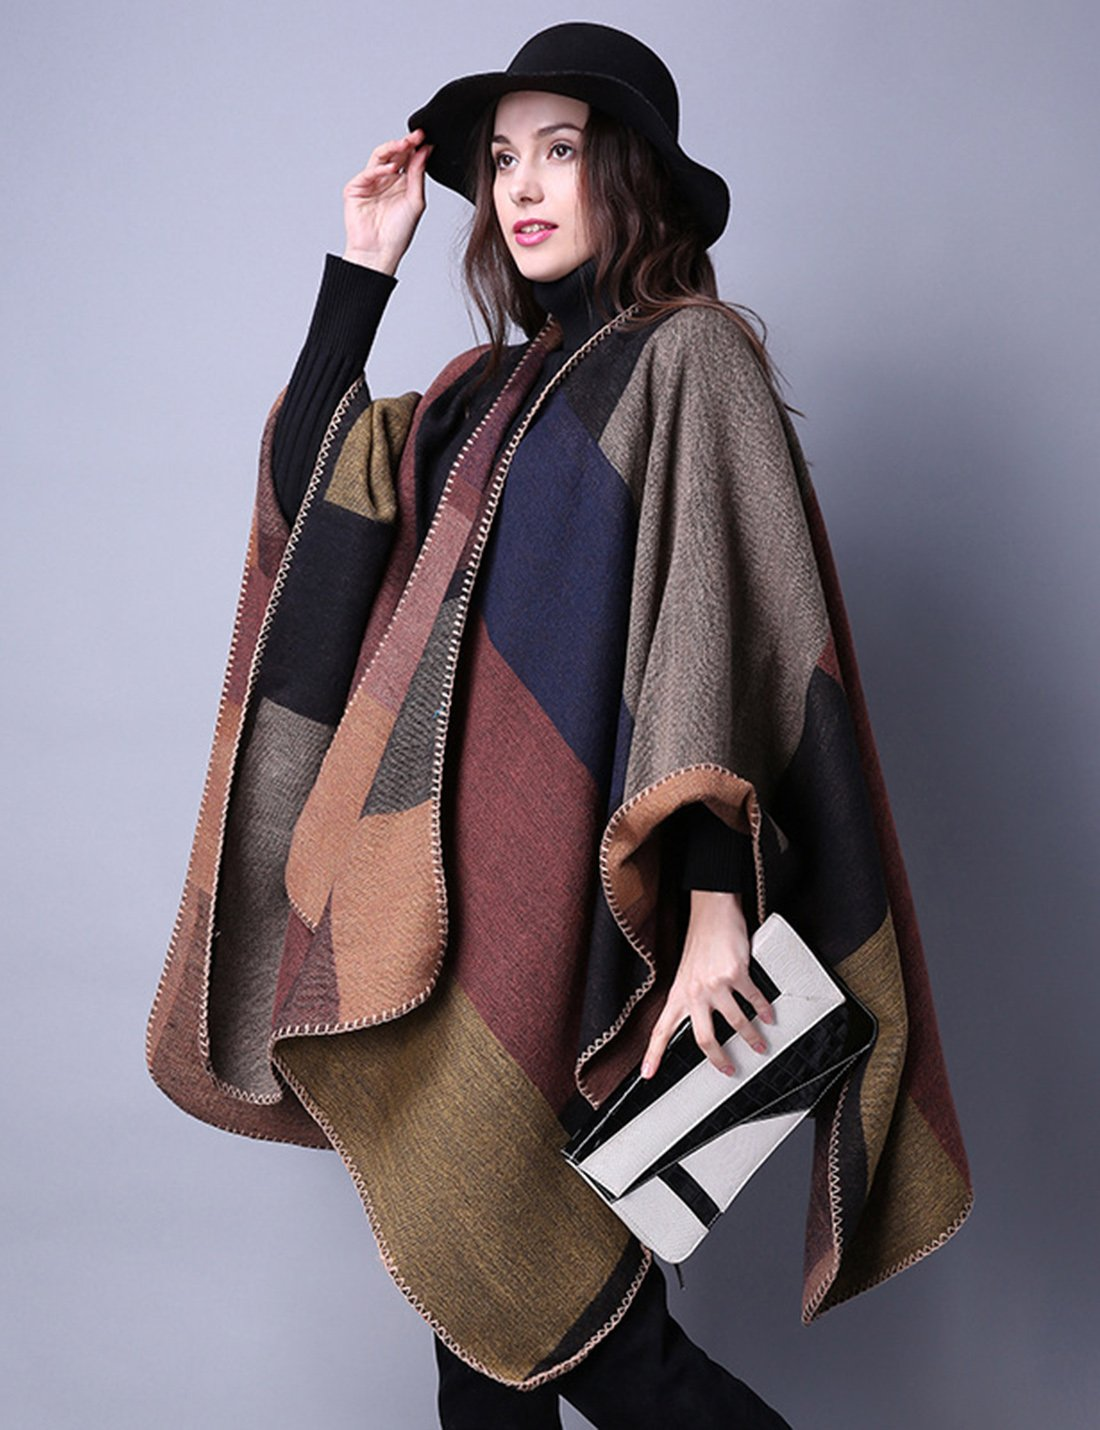 Gihuo Women's Color Block Plaid Open Front Shawl Poncho Cape Wrap Cardigan (Khaki) by Gihuo (Image #4)